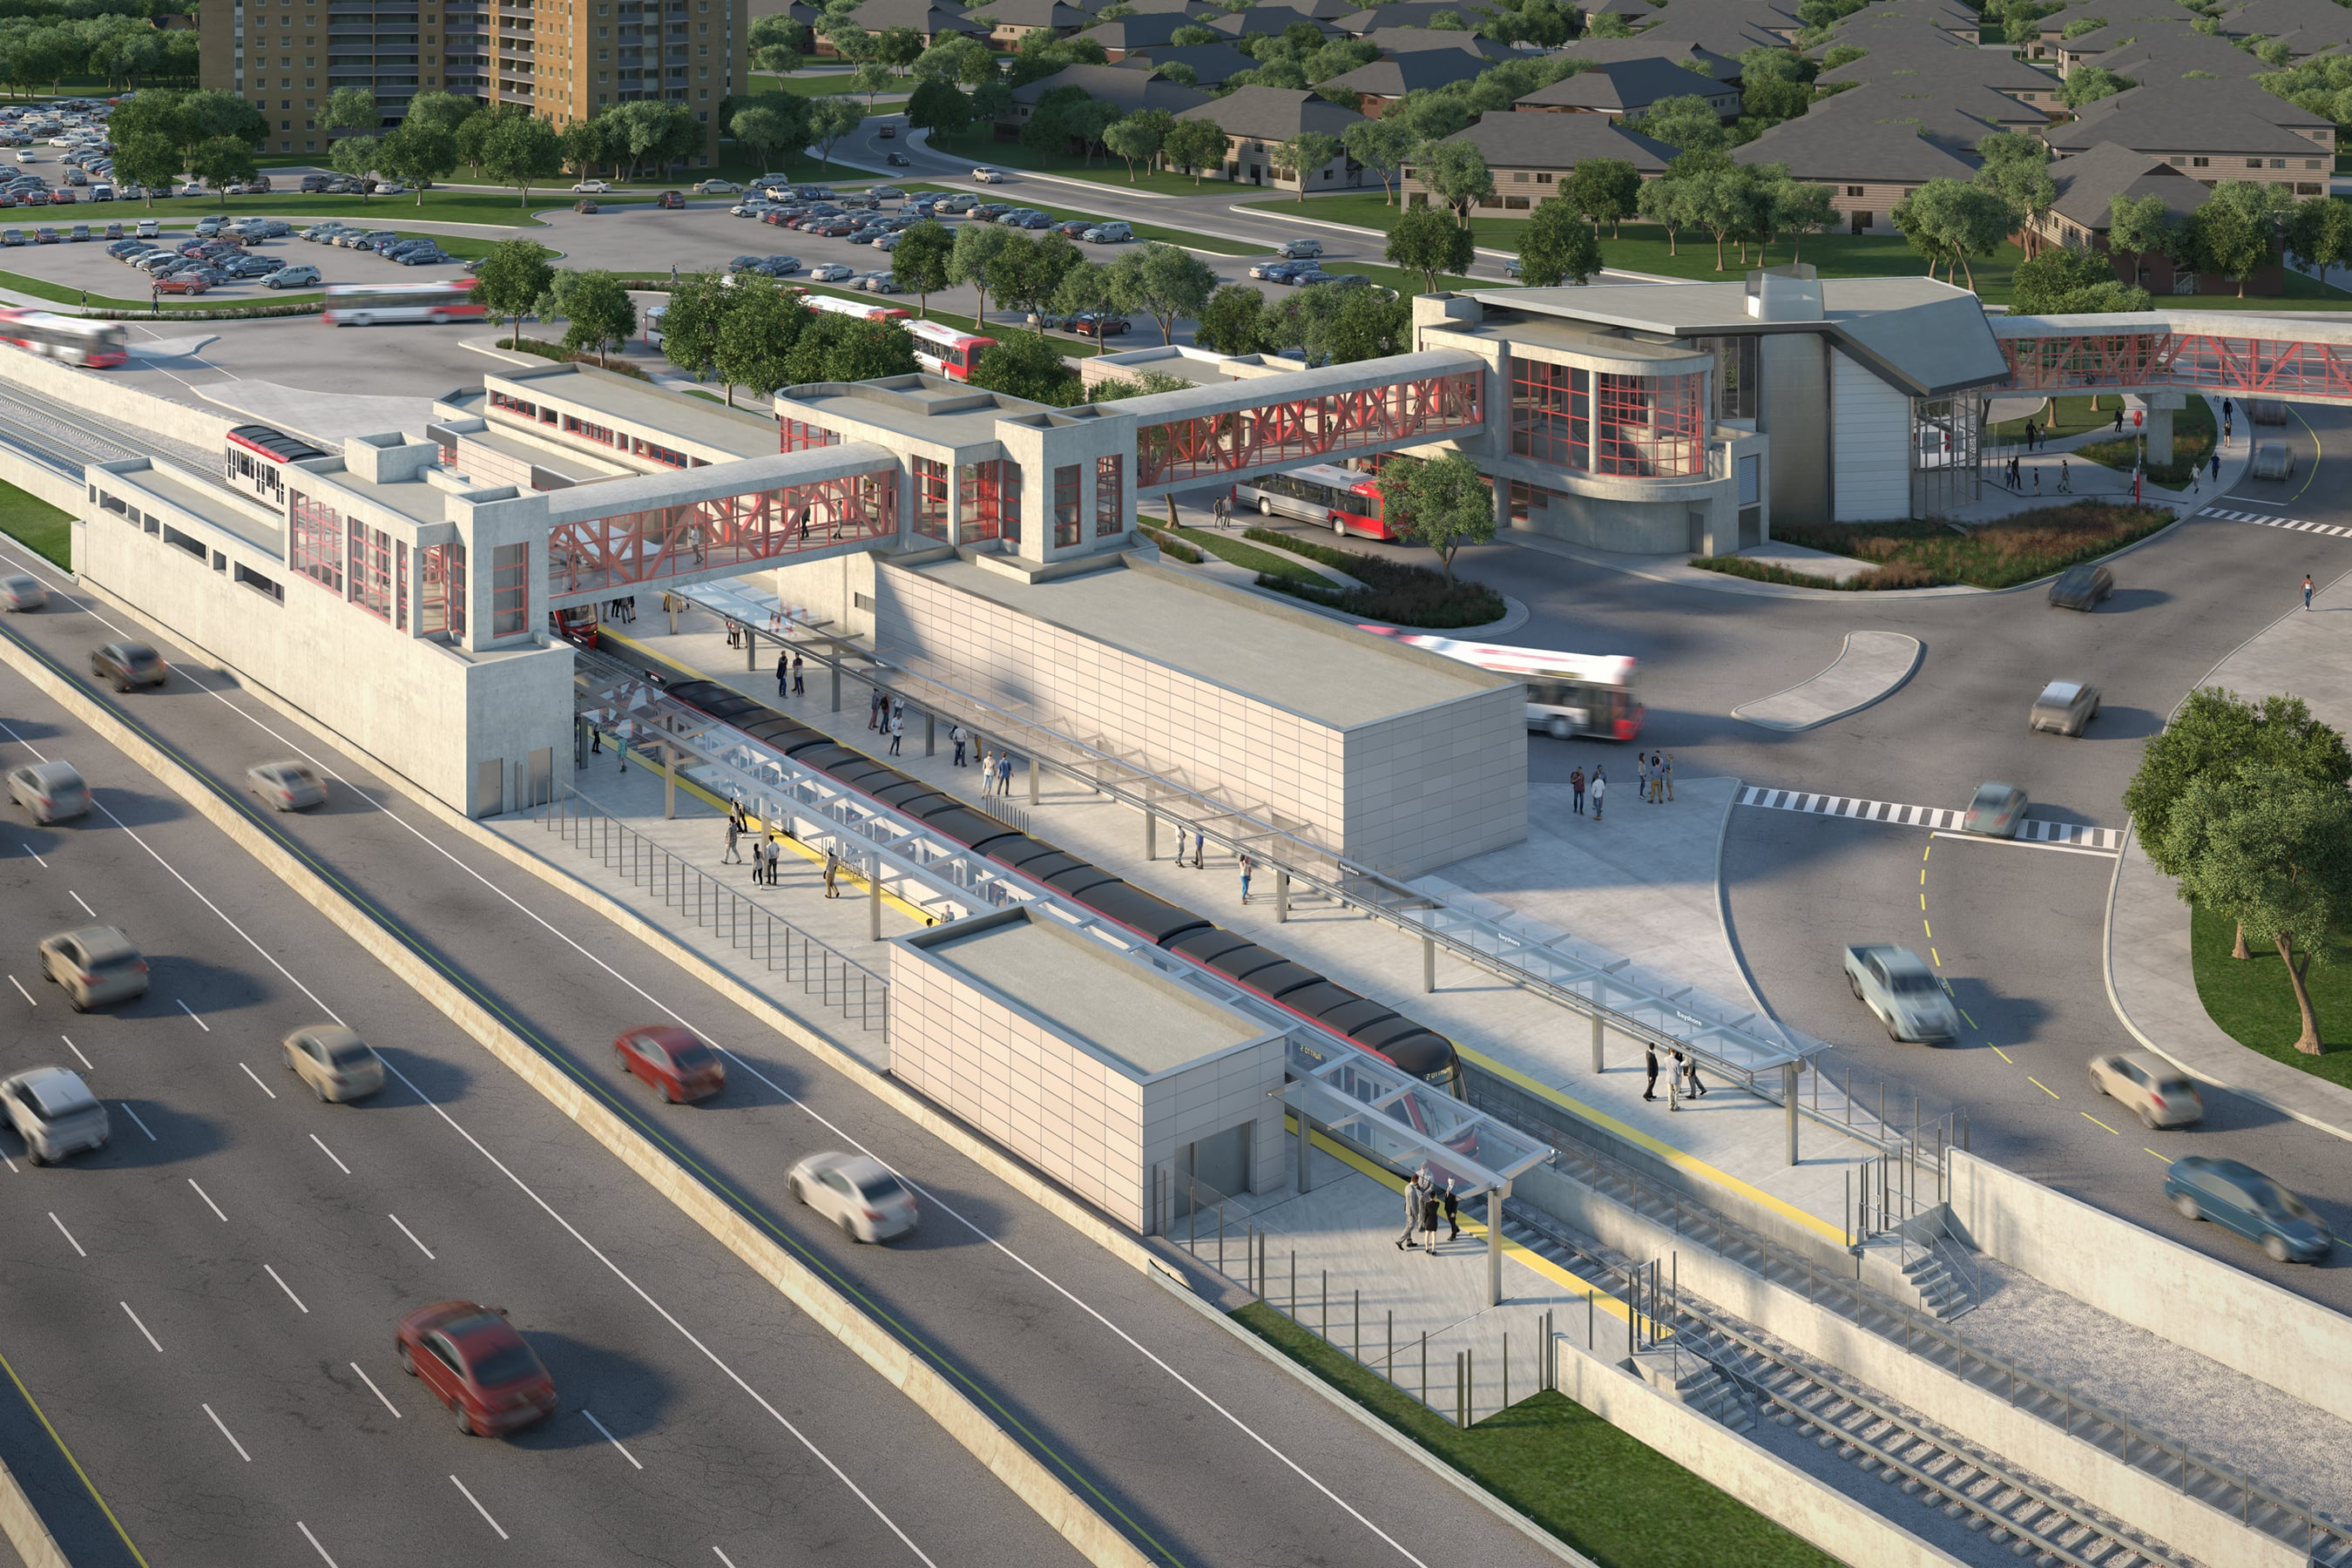 This image is an artistic representation of the Bayshore Station design. The final product may not be exactly as shown.